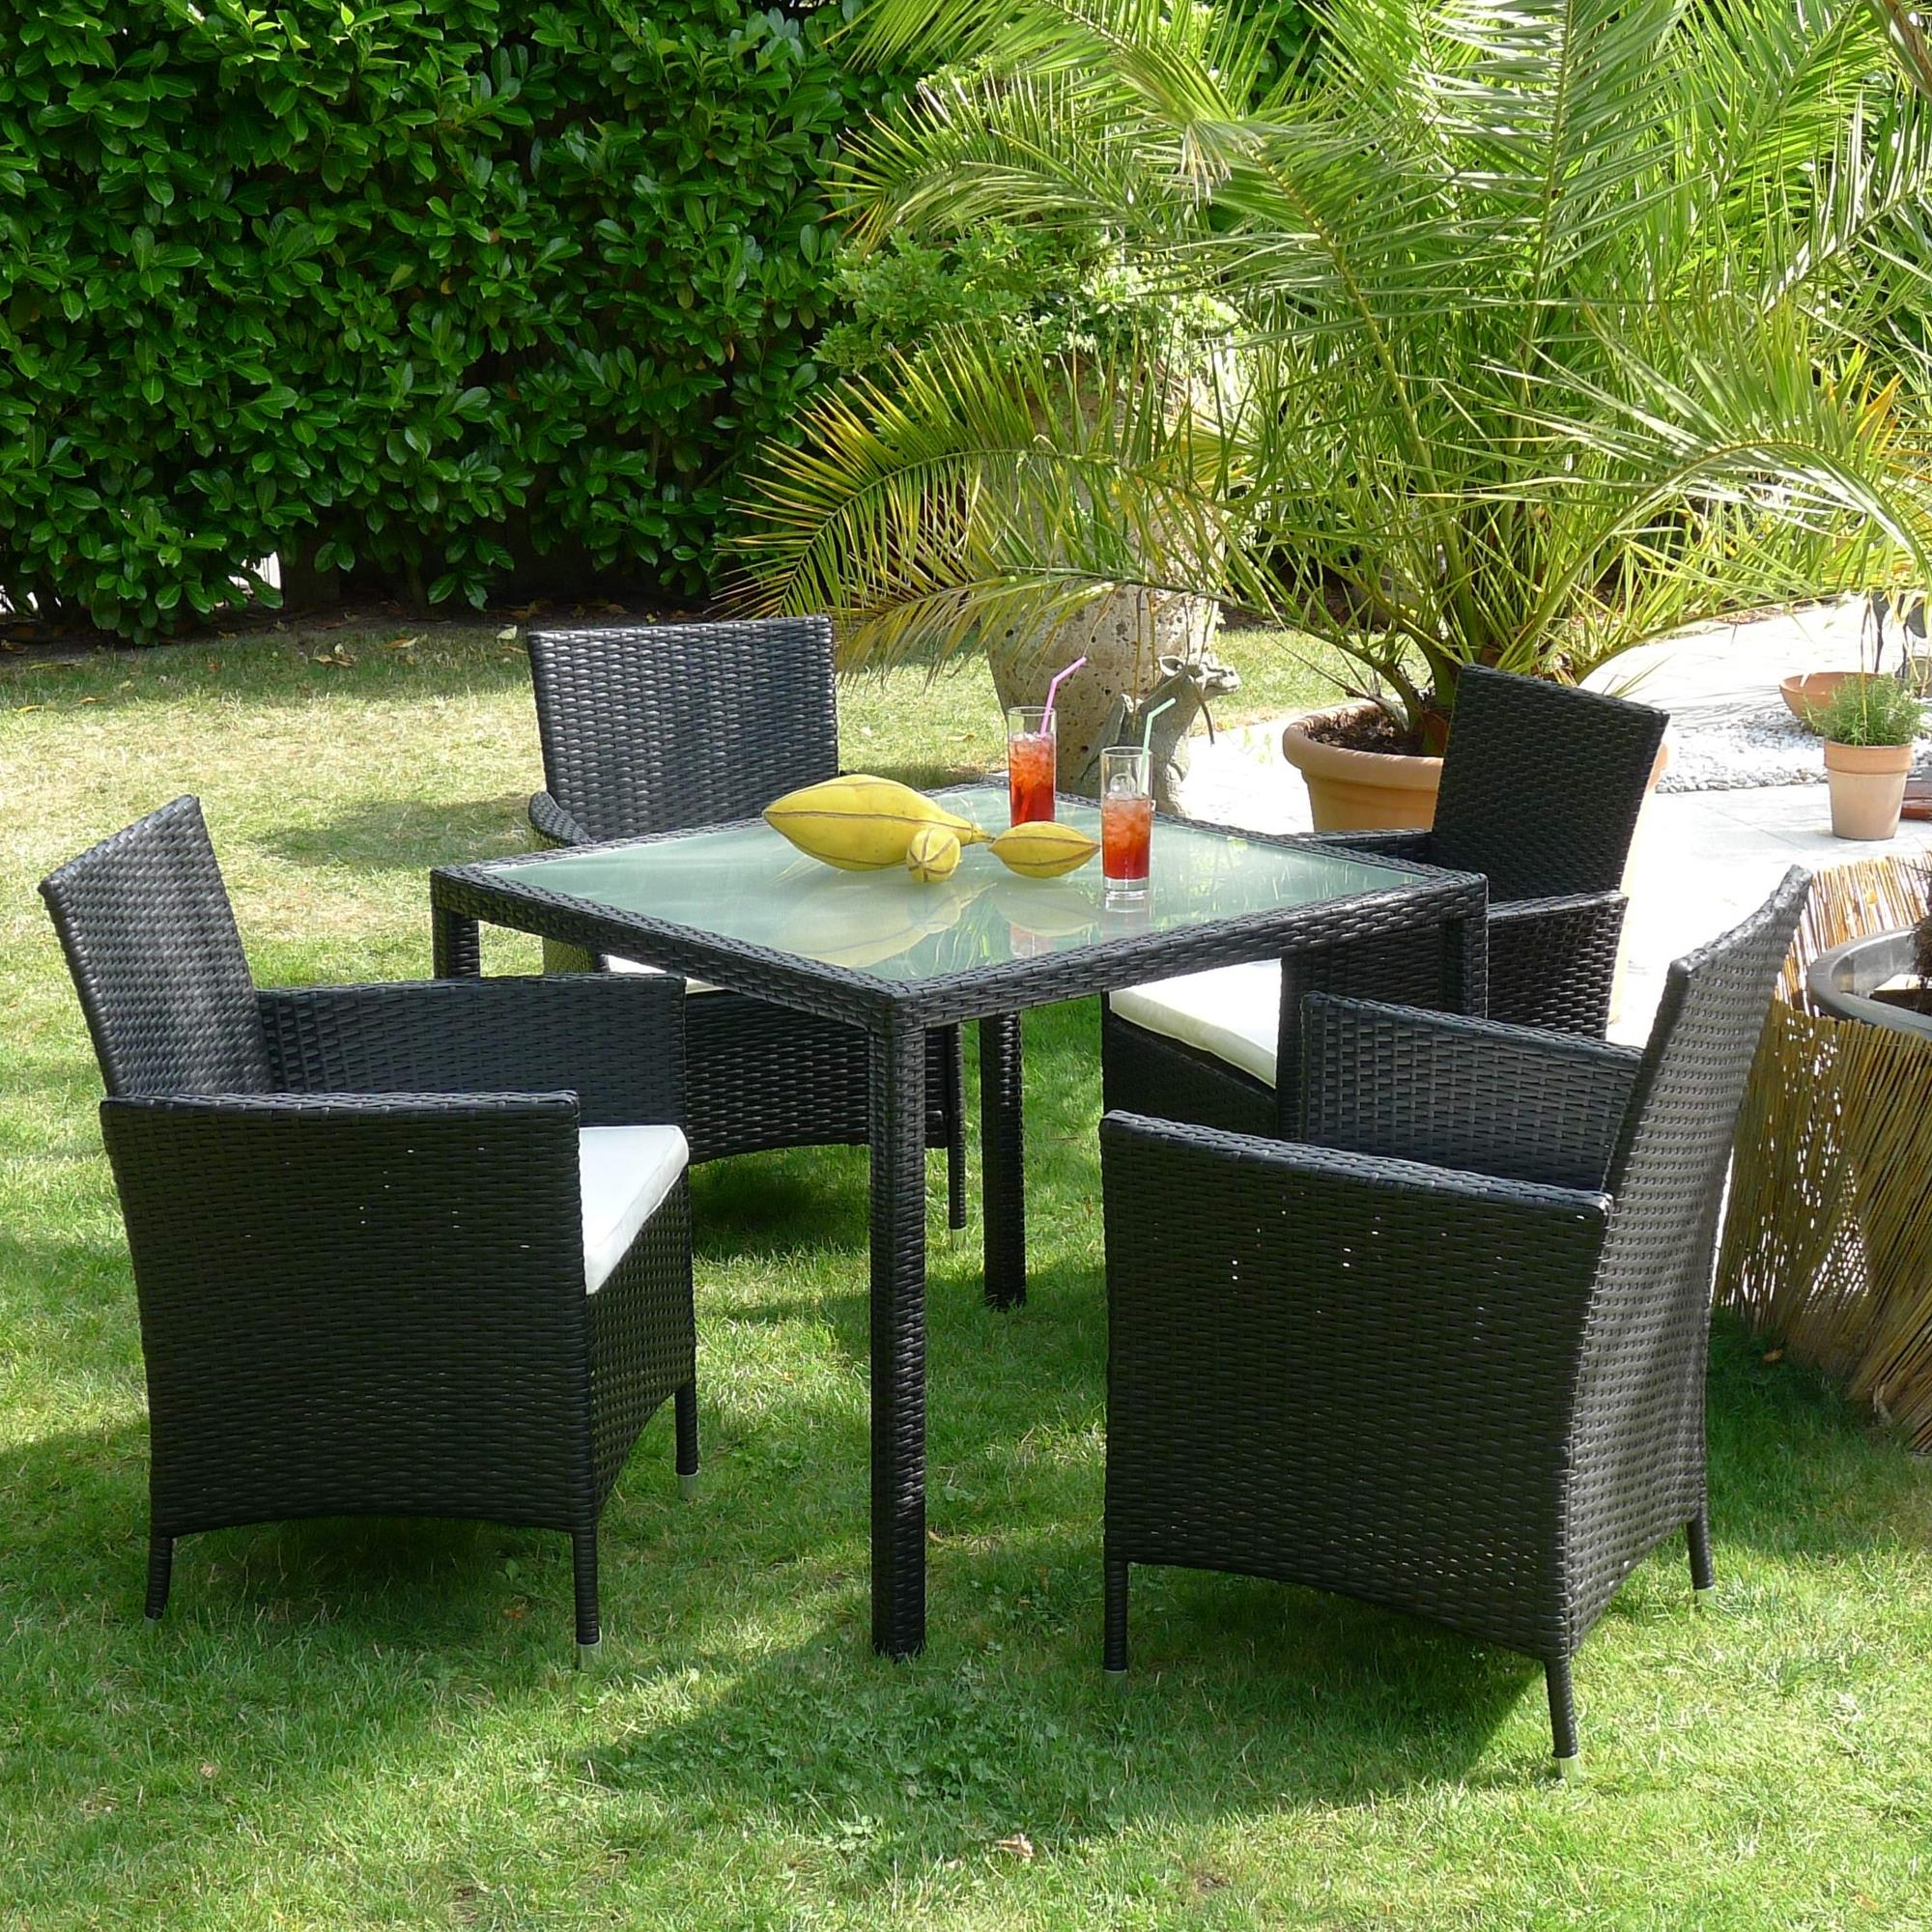 poly rattan sitzgruppe garten m bel garnitur esstisch gartenset schwarz ebay. Black Bedroom Furniture Sets. Home Design Ideas